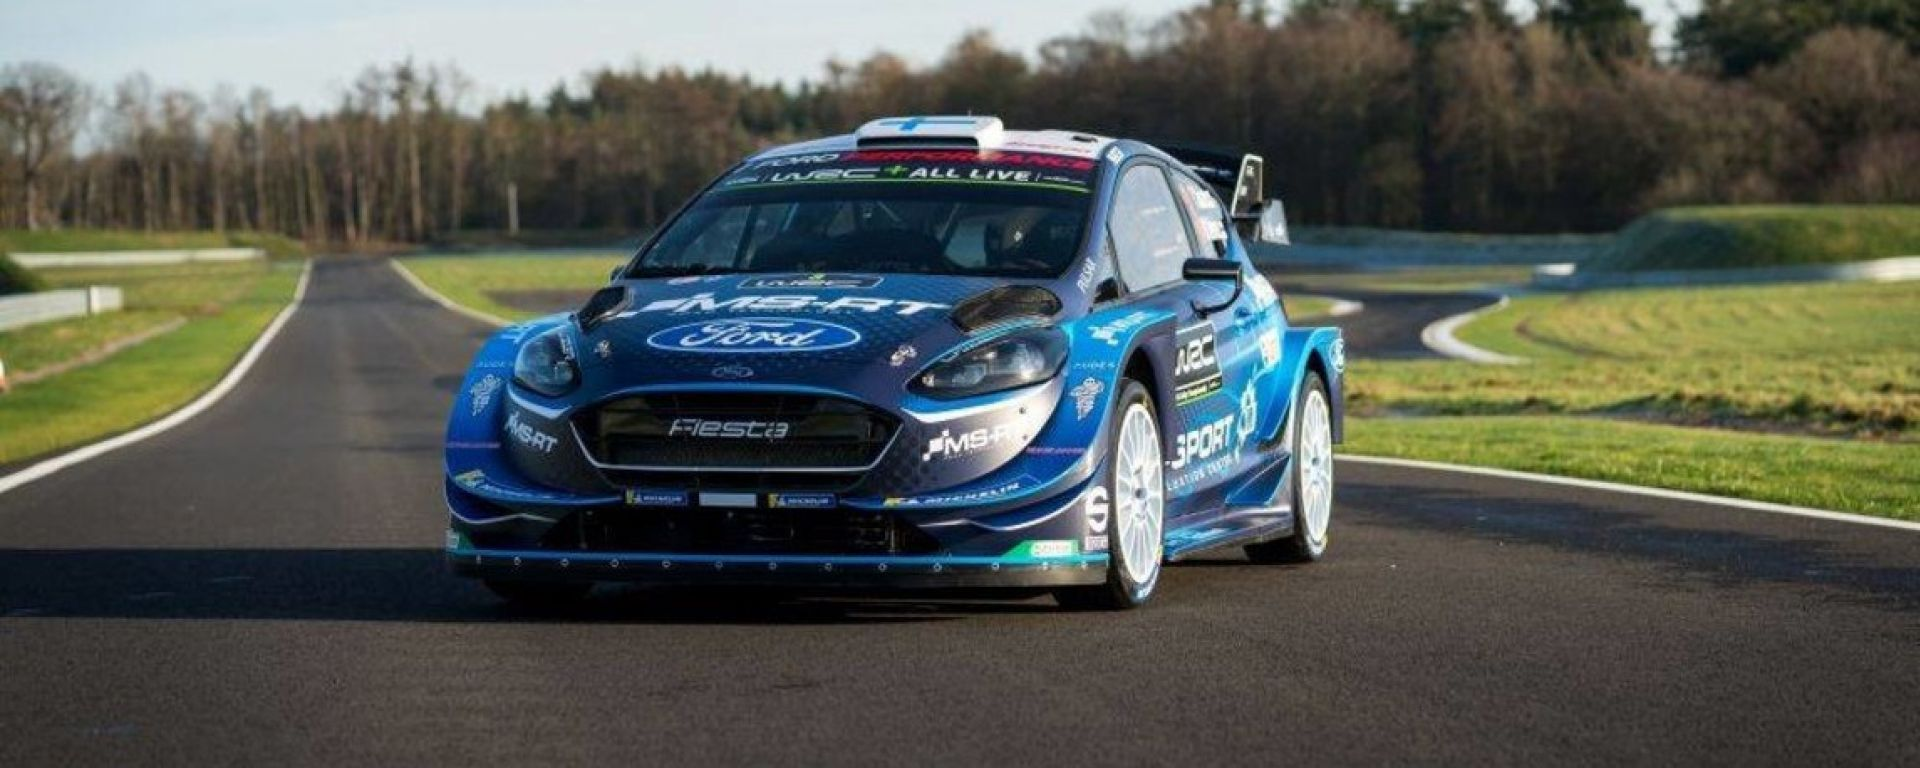 Ford M-Sport World Rally Team, WRC 2019